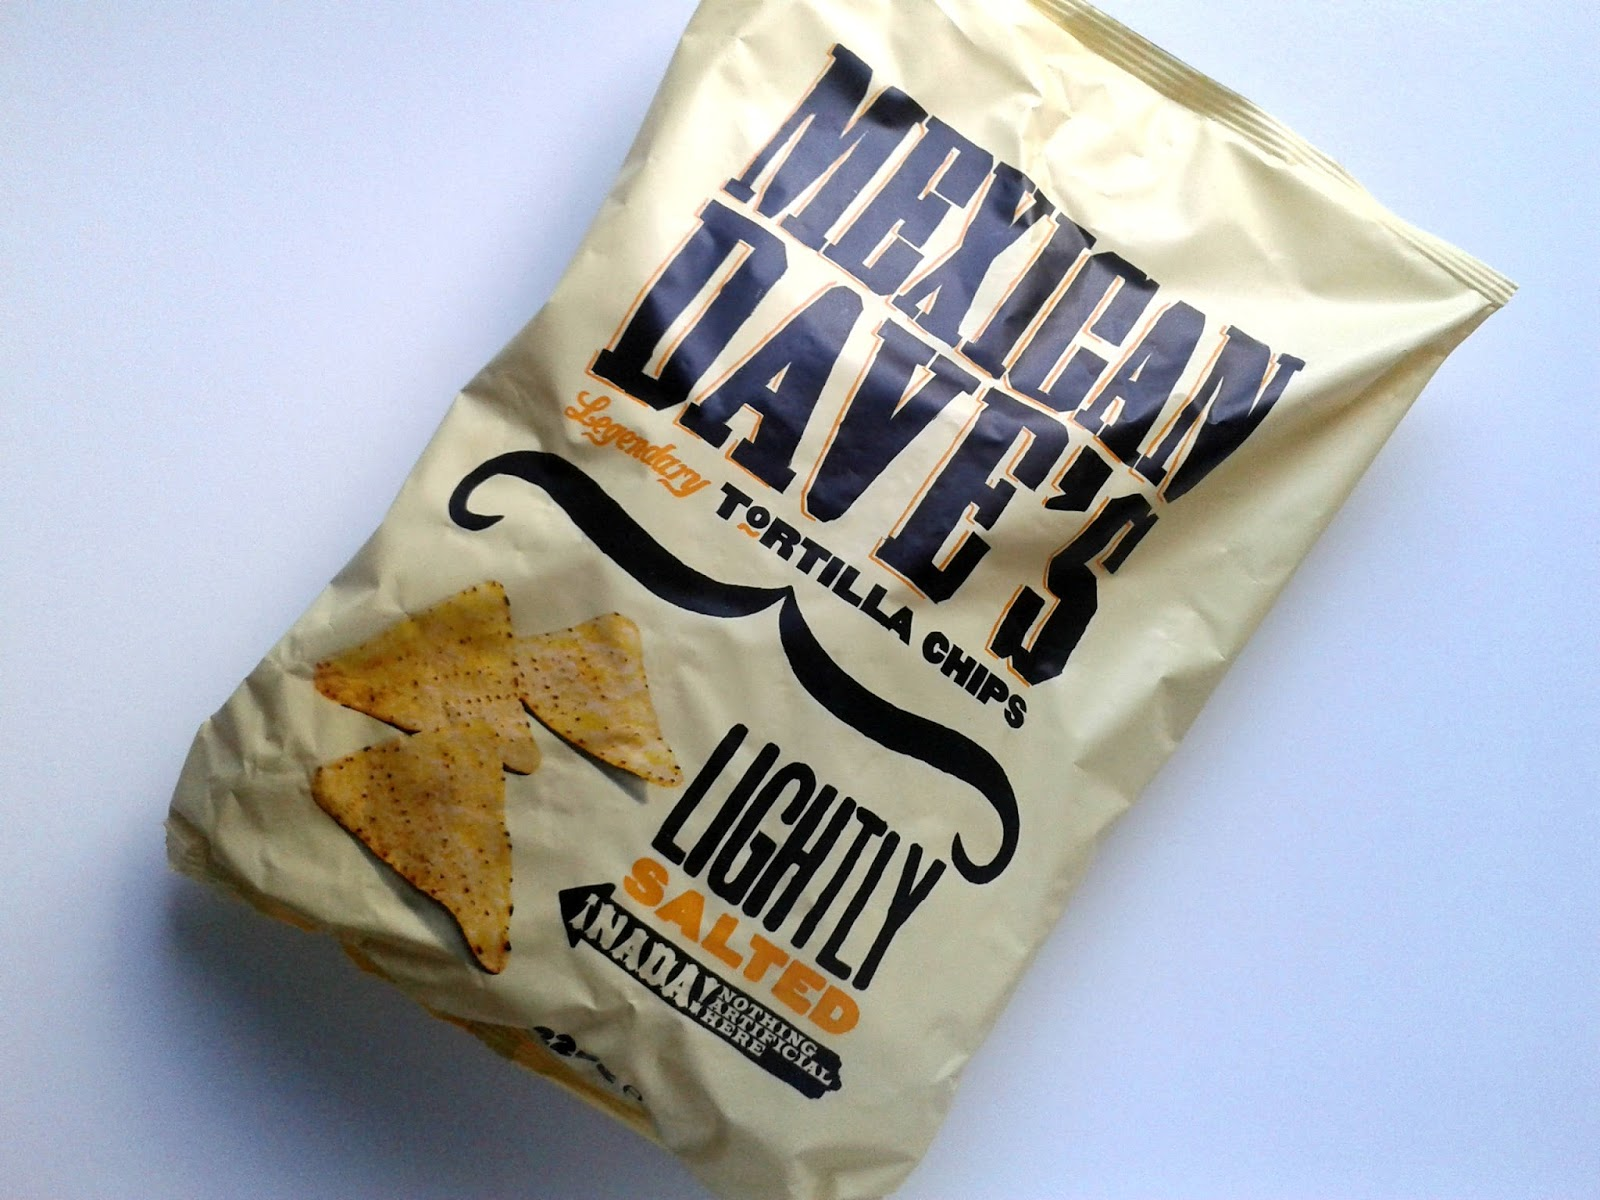 Mexican Dave's Legendary Lightly Salted Tortilla Chips August Degustabox Review